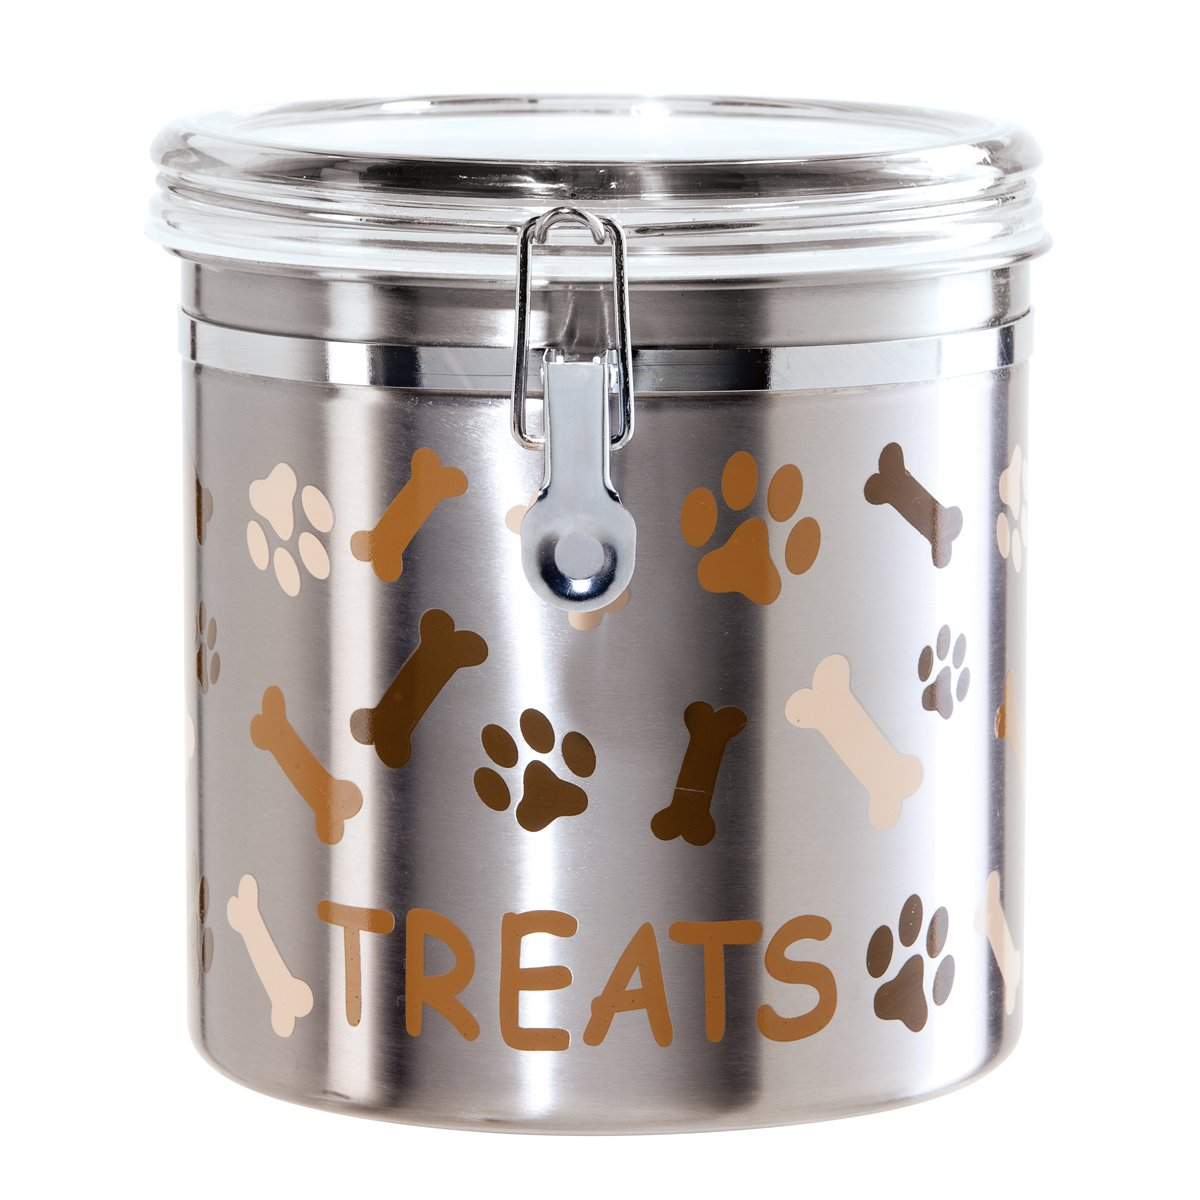 Oggi Airtight Stainless Steel 130-Ounce Pet Treat Canister with Treats, Paws and Bones Motif-Clear Acrylic Flip-Top Lid with Locking Clamp Closure by Oggi (Image #1)